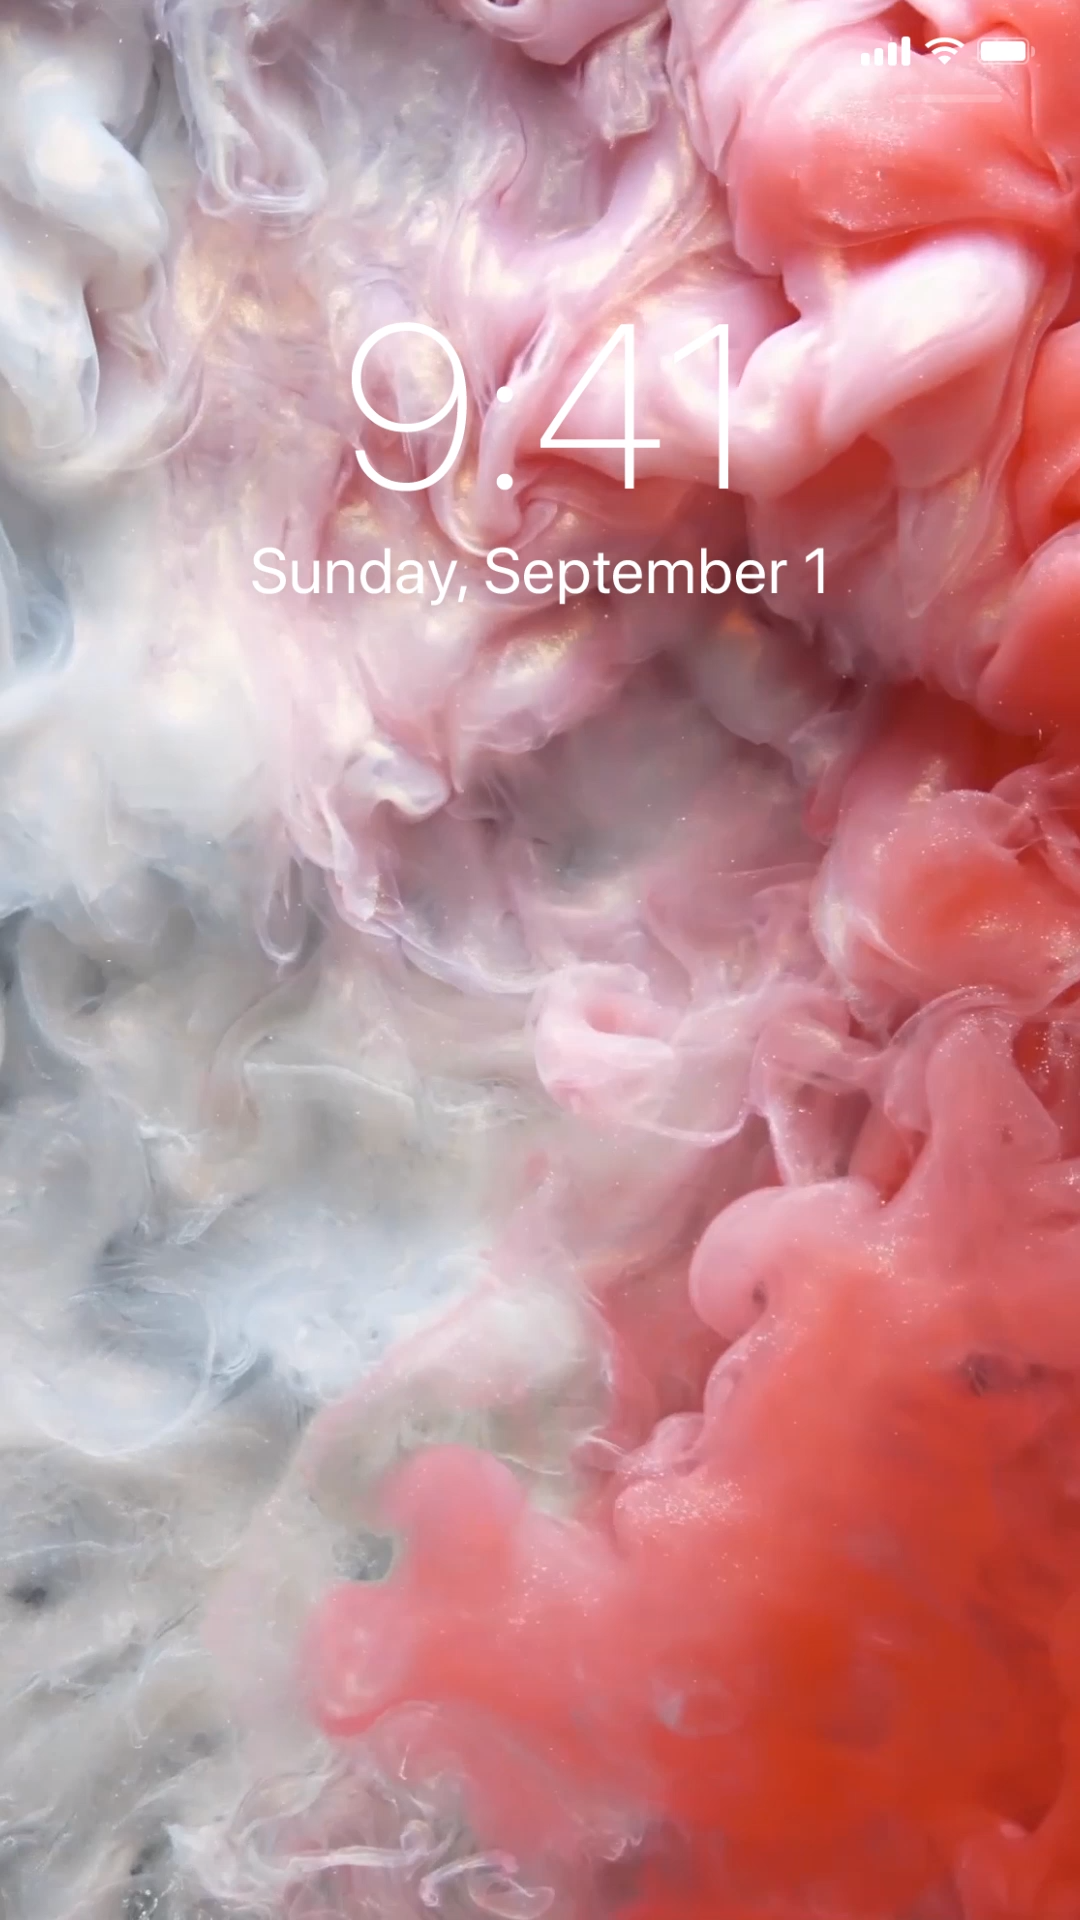 Live Wallpapers Video Iphone Wallpaper Video Live Wallpaper Iphone Screen Savers Wallpapers